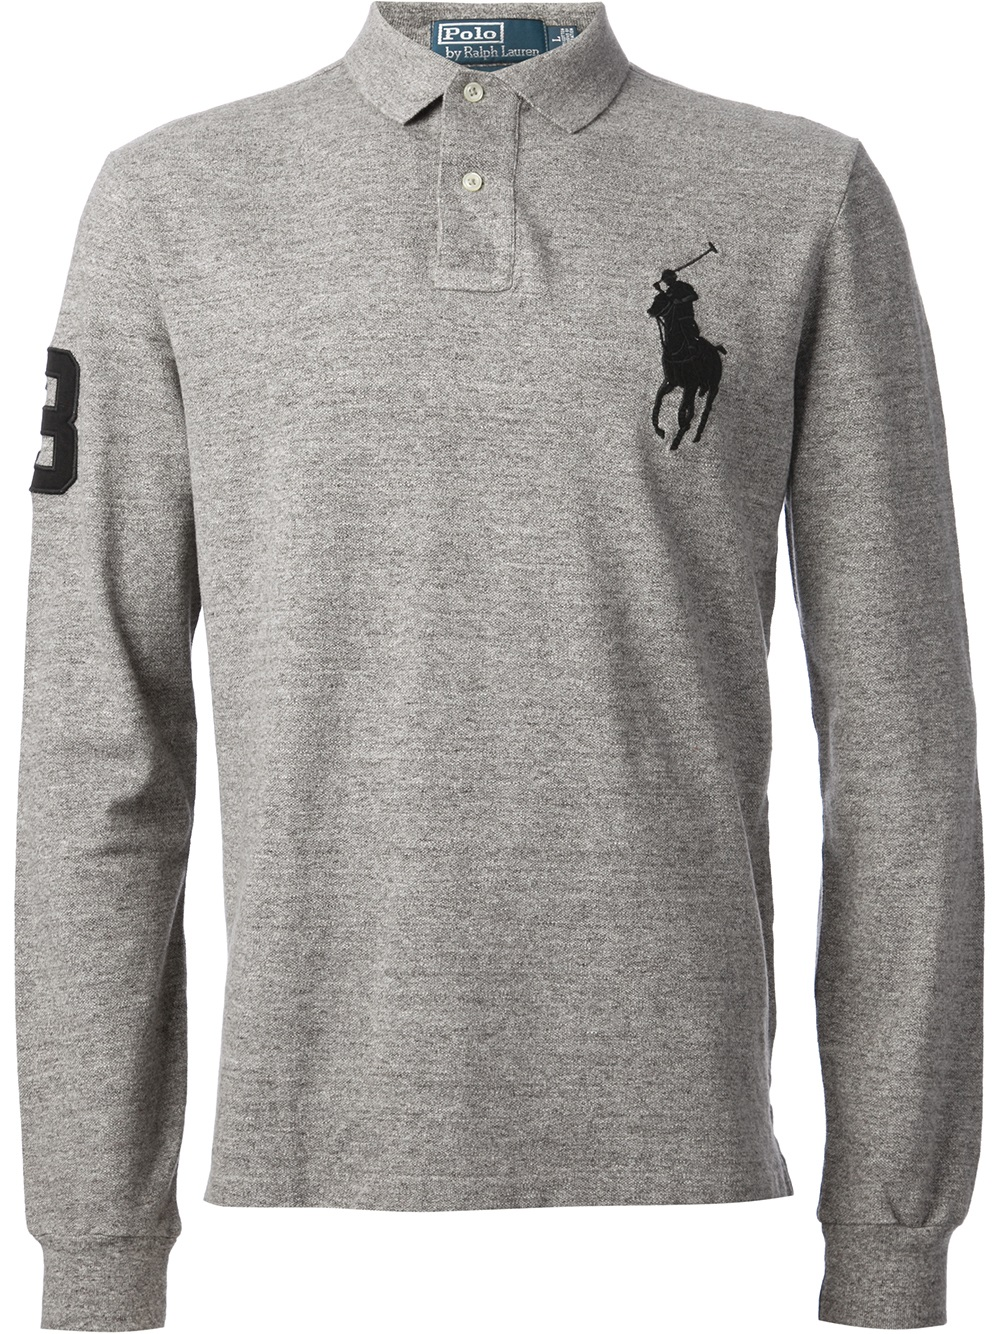 Lyst - Polo Ralph Lauren Long Sleeve Polo Shirt in Gray for Men f93d49d43d07